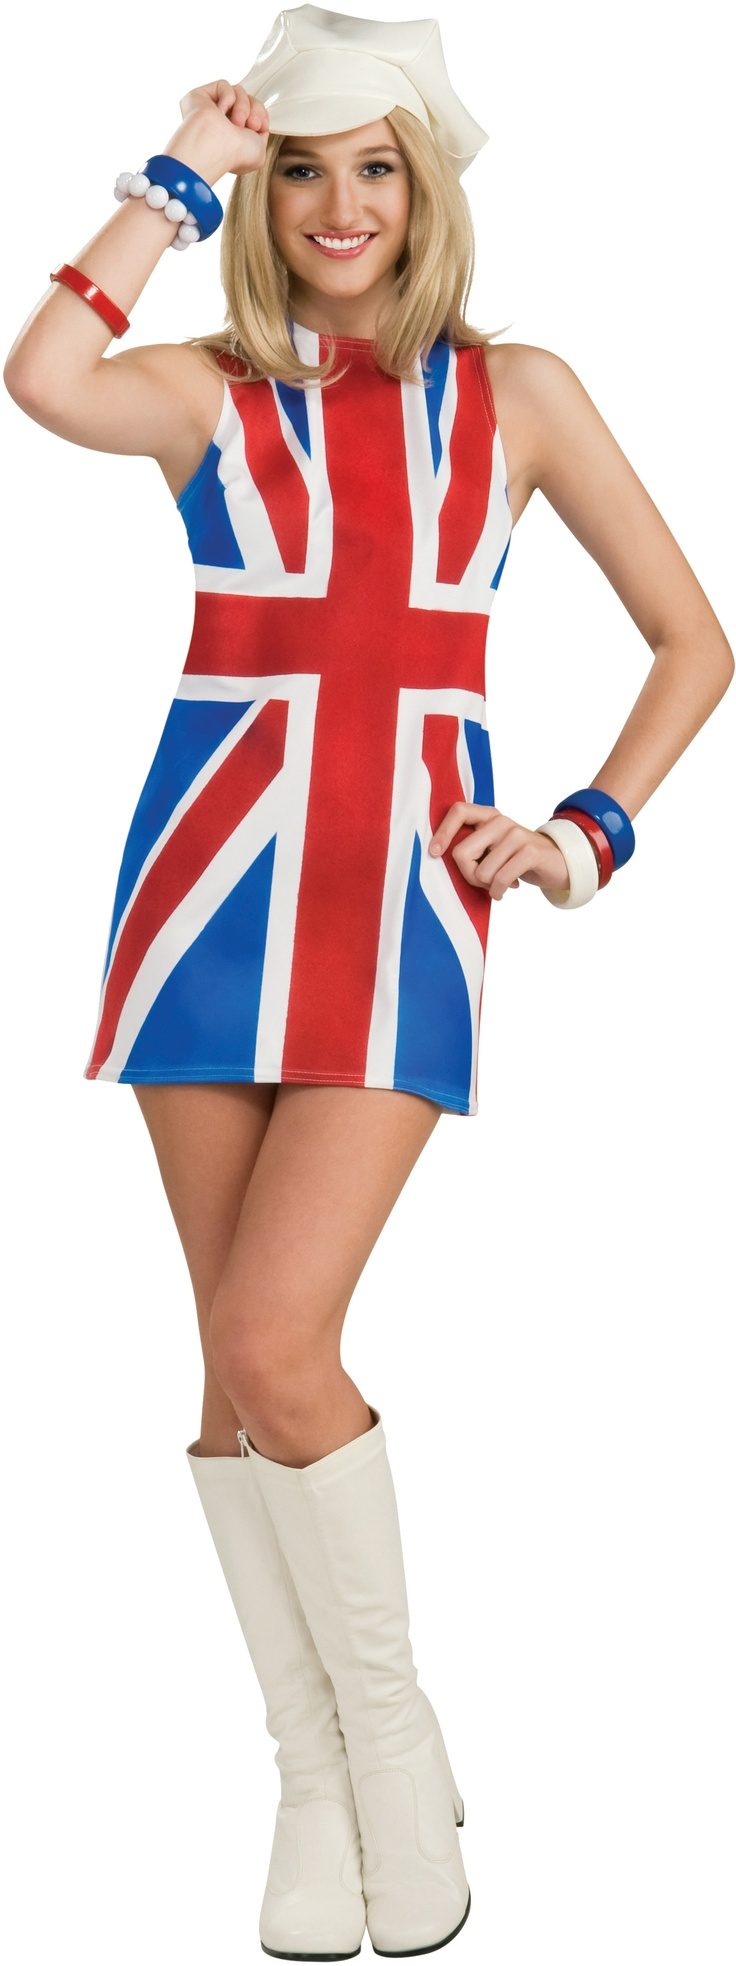 British Invasion Costume...planning on going as this for Halloween this year :)